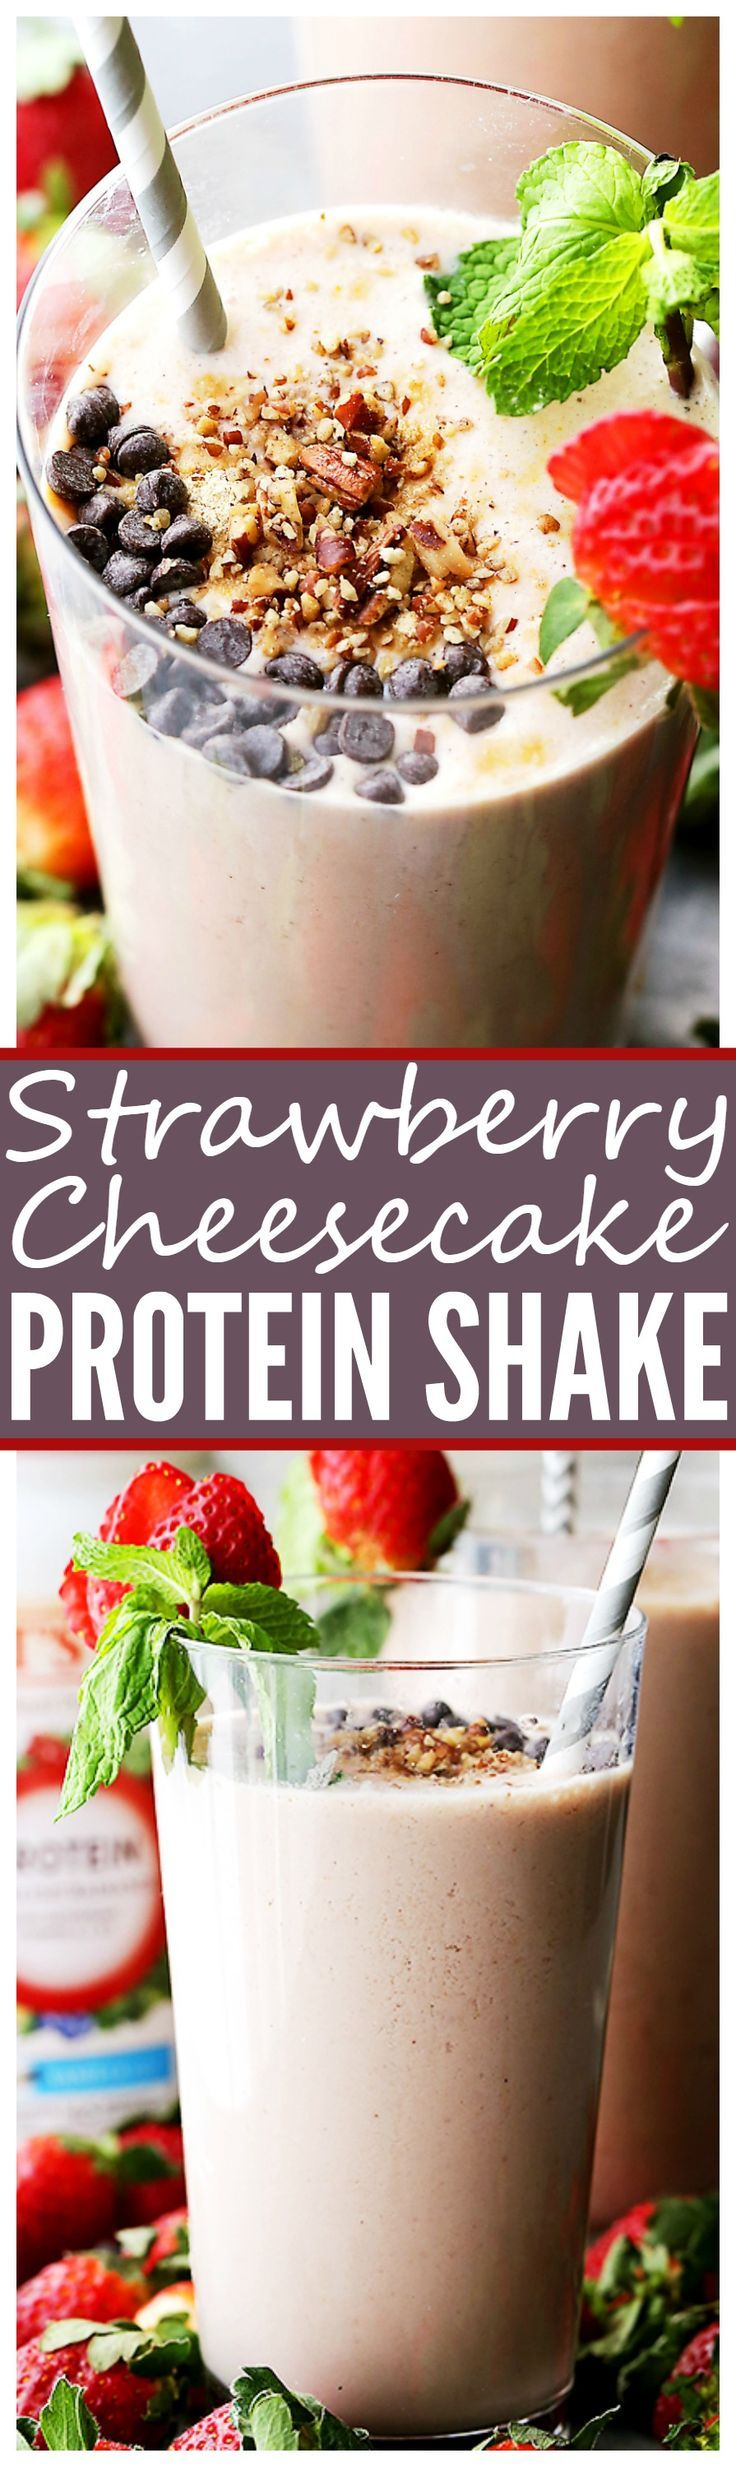 Strawberry Cheesecake Protein Shake - This amazing protein shake is just as delicious as a slice of strawberry cheesecake, BUT this is way healthier and it's packed with protein! In collaboration with @burtsbees #ad #drinkitallin